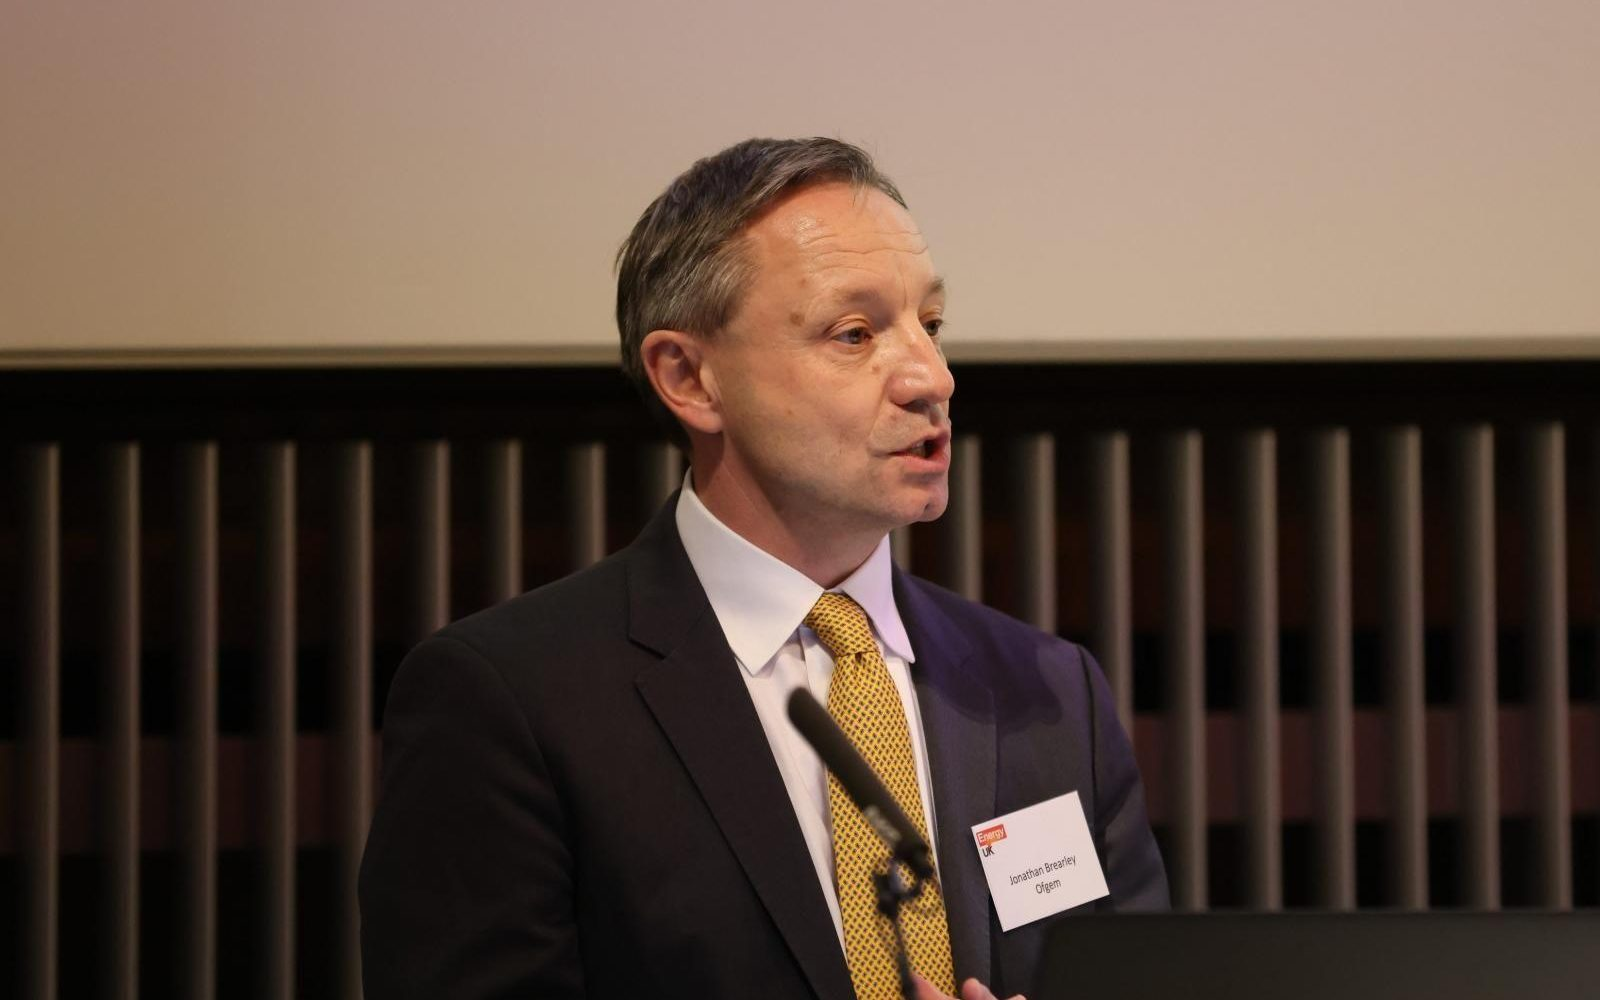 Ofgem CEO Jonathan Brearley (pictured) spoke of the need to increase the resiliency in the energy supply market. Image: Ofgem.